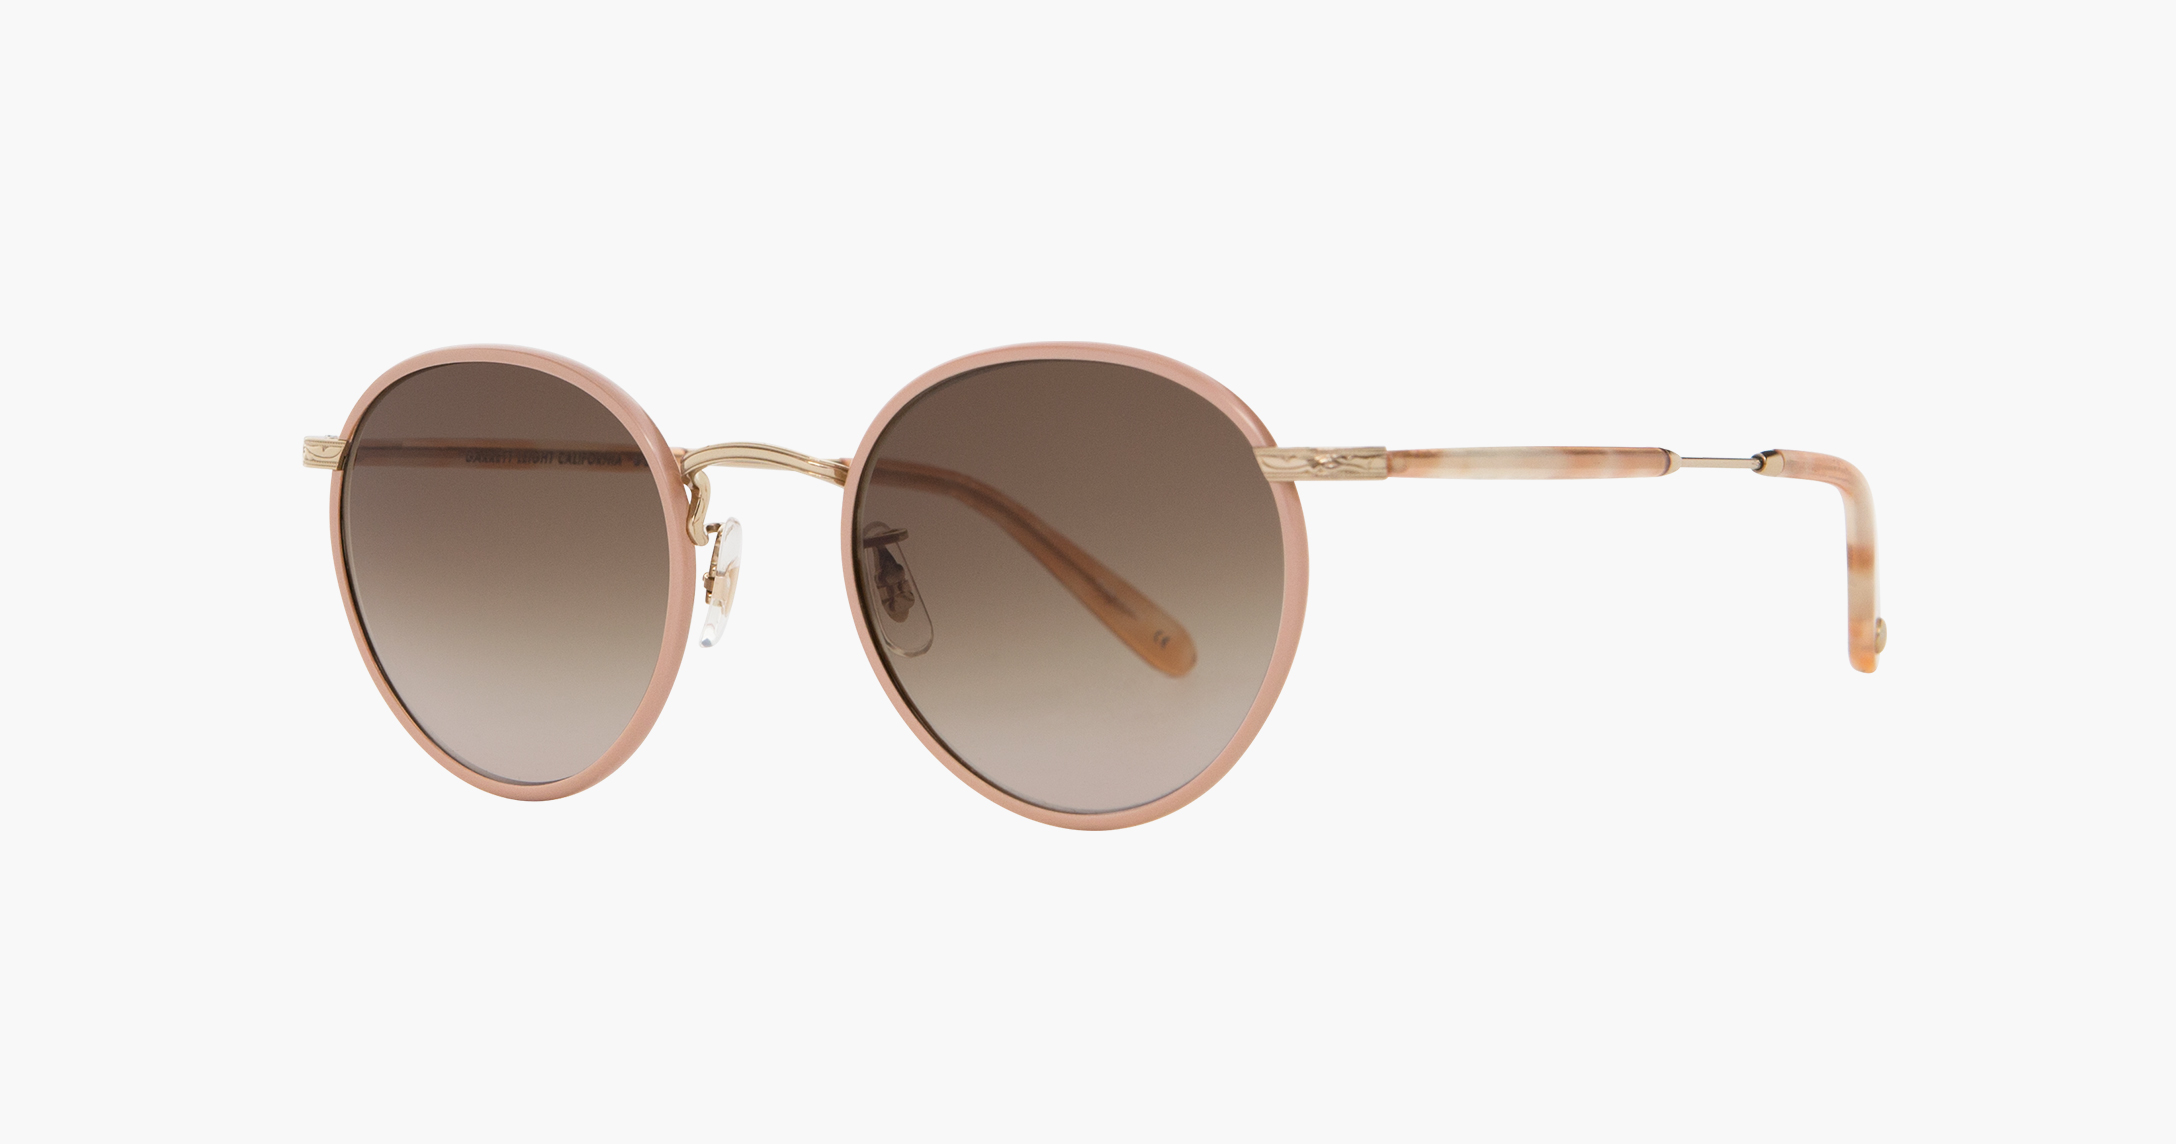 8df3d8cd1d3 An iconic round metal frame with Windsor rims and tortoise temples in two  sizes inspired by music legend John Lennon.